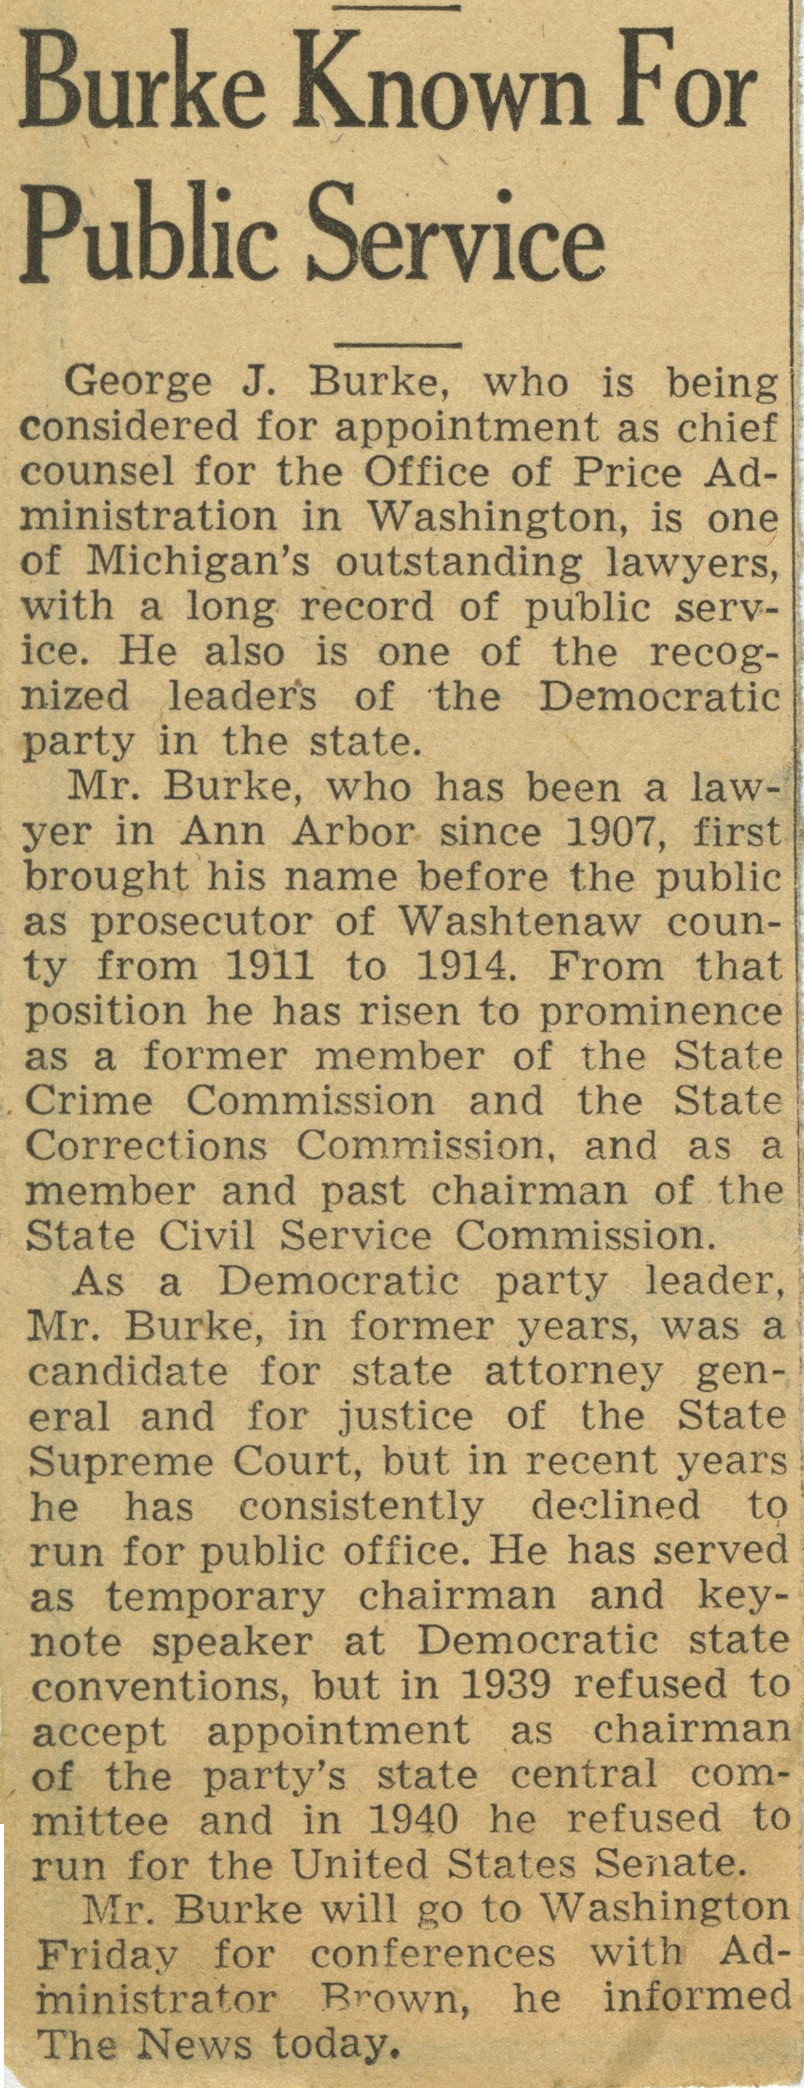 Burke Known For Public Service image